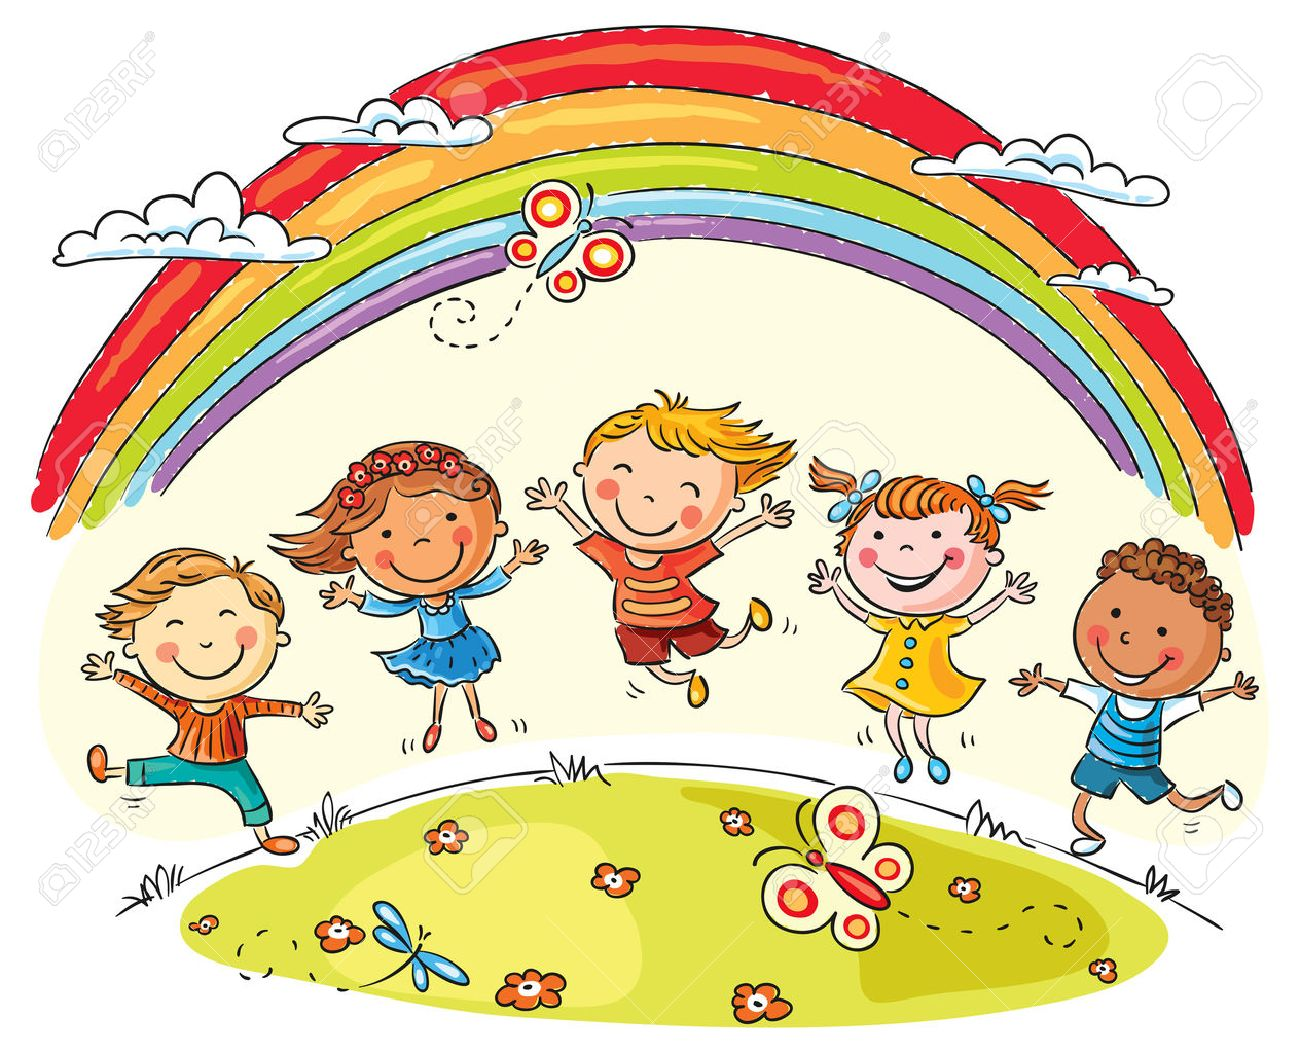 Kids Jumping With Joy On A Hill Under Rainbow, Colorful Cartoon ...